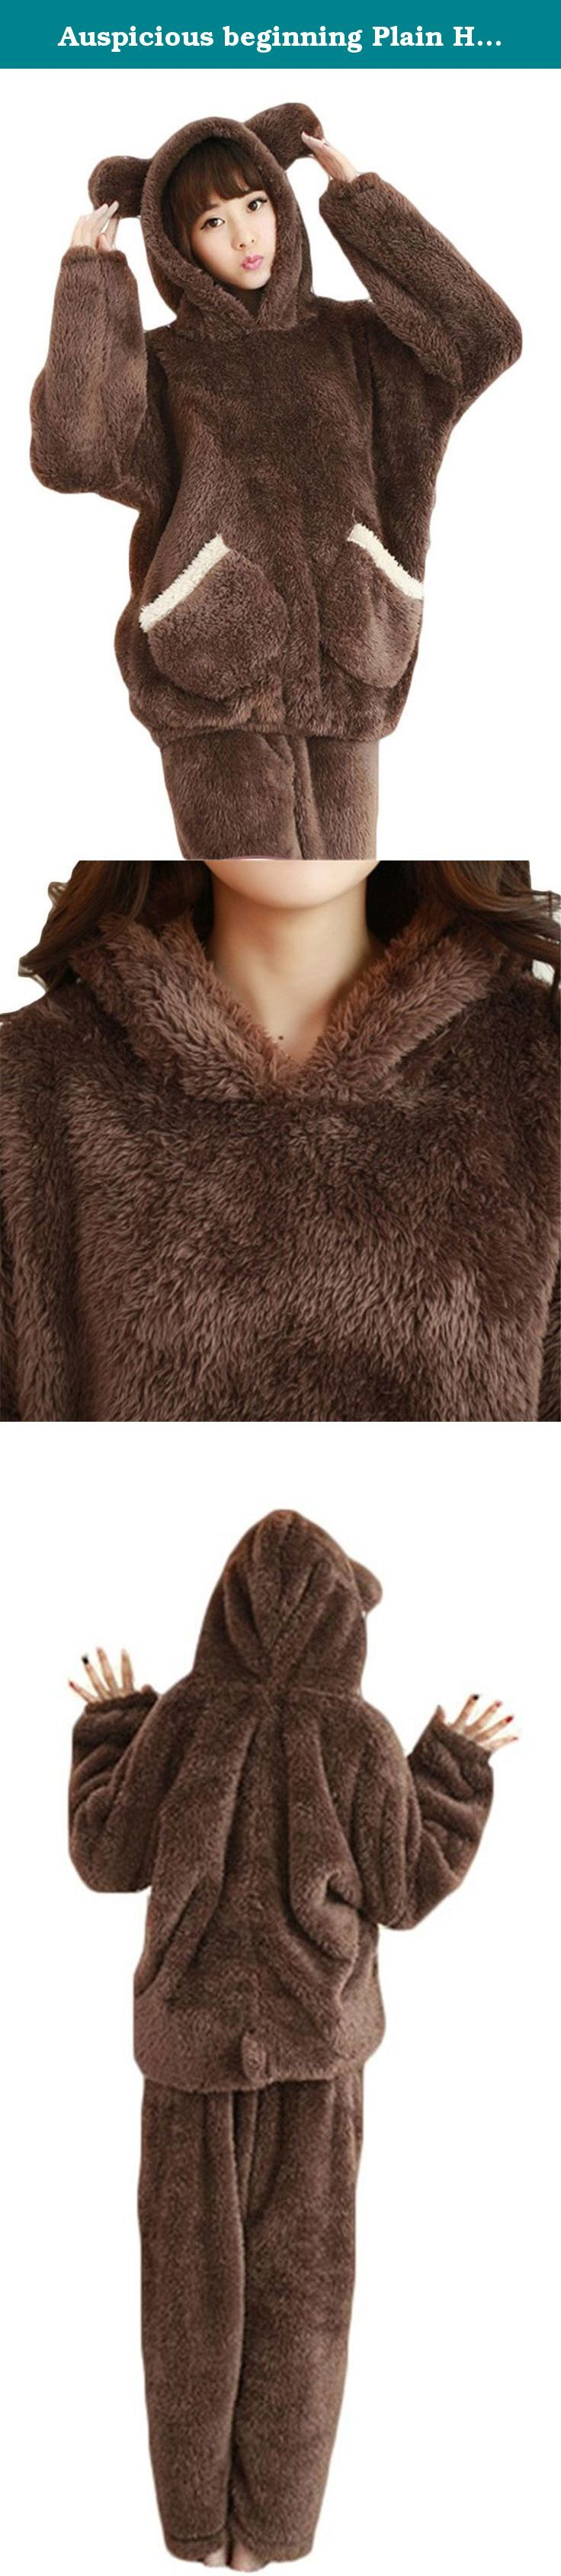 Auspicious beginning Plain Hooded Bear Sleepwear Fleece Pajamas For Ladies Girls. Material: Fleece Two-piece set Long Sleeve Very comfortable to touch and wear. It is cute wearing when you at home .